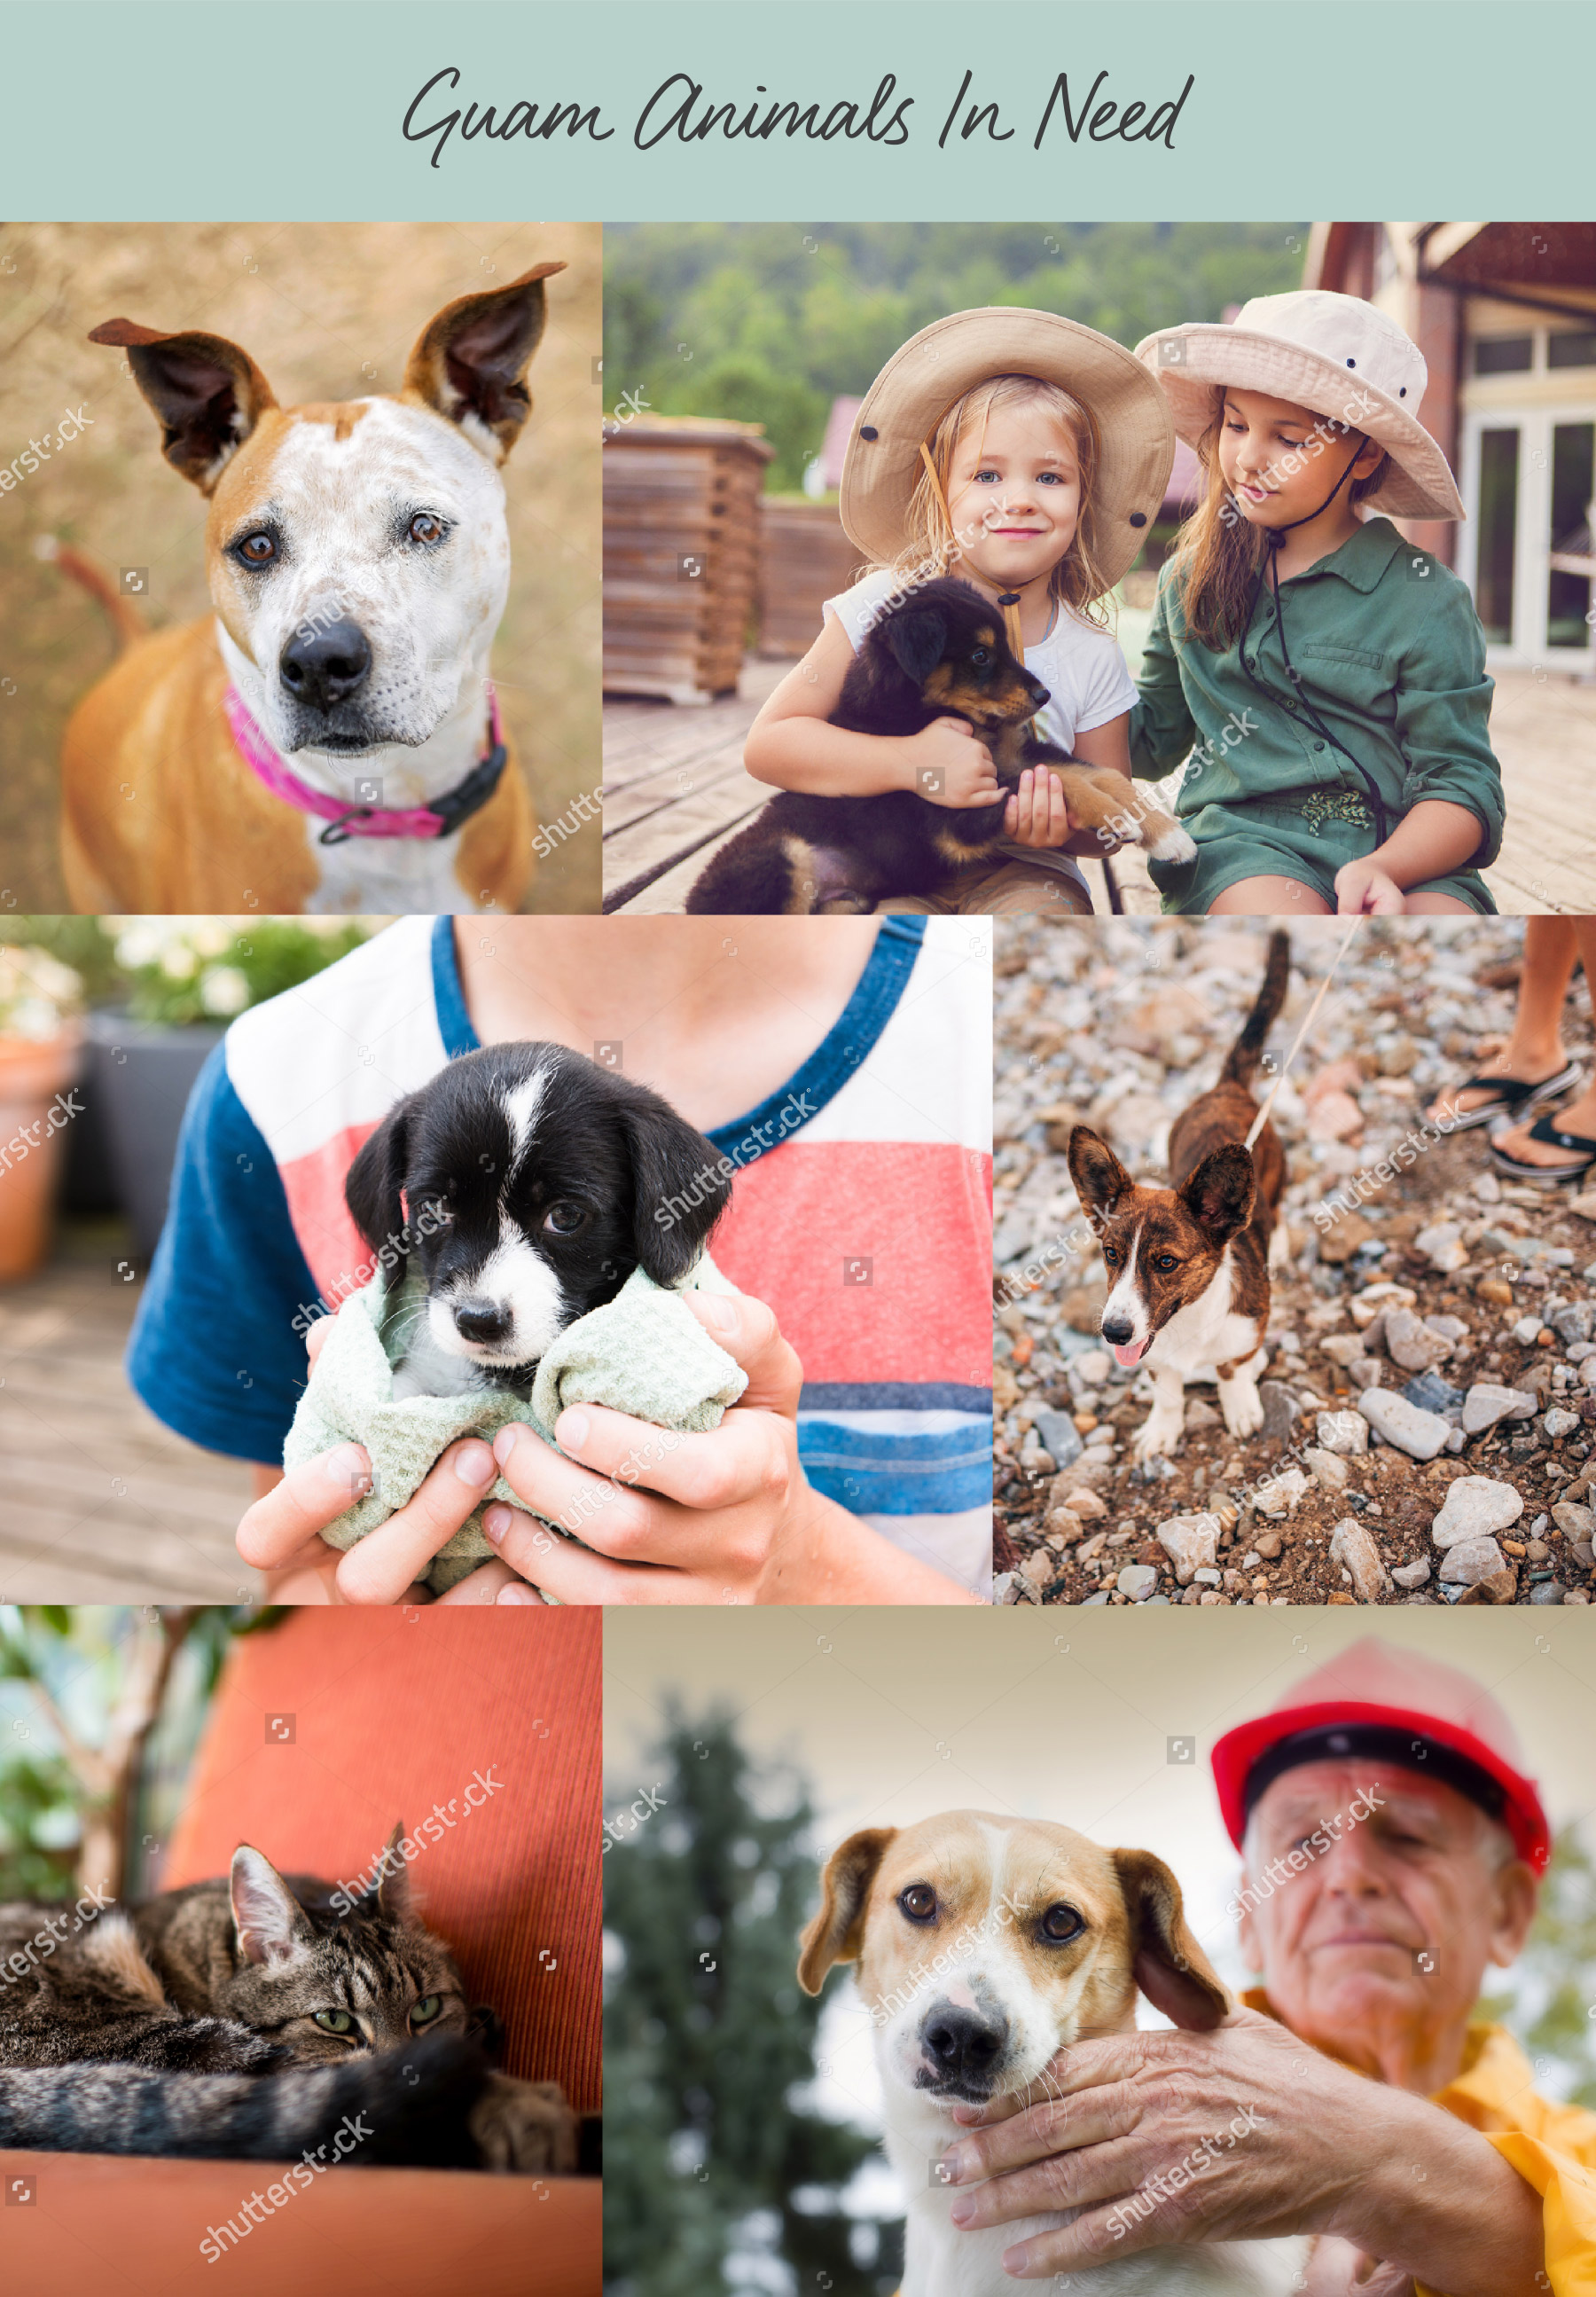 Collage of animals being aided